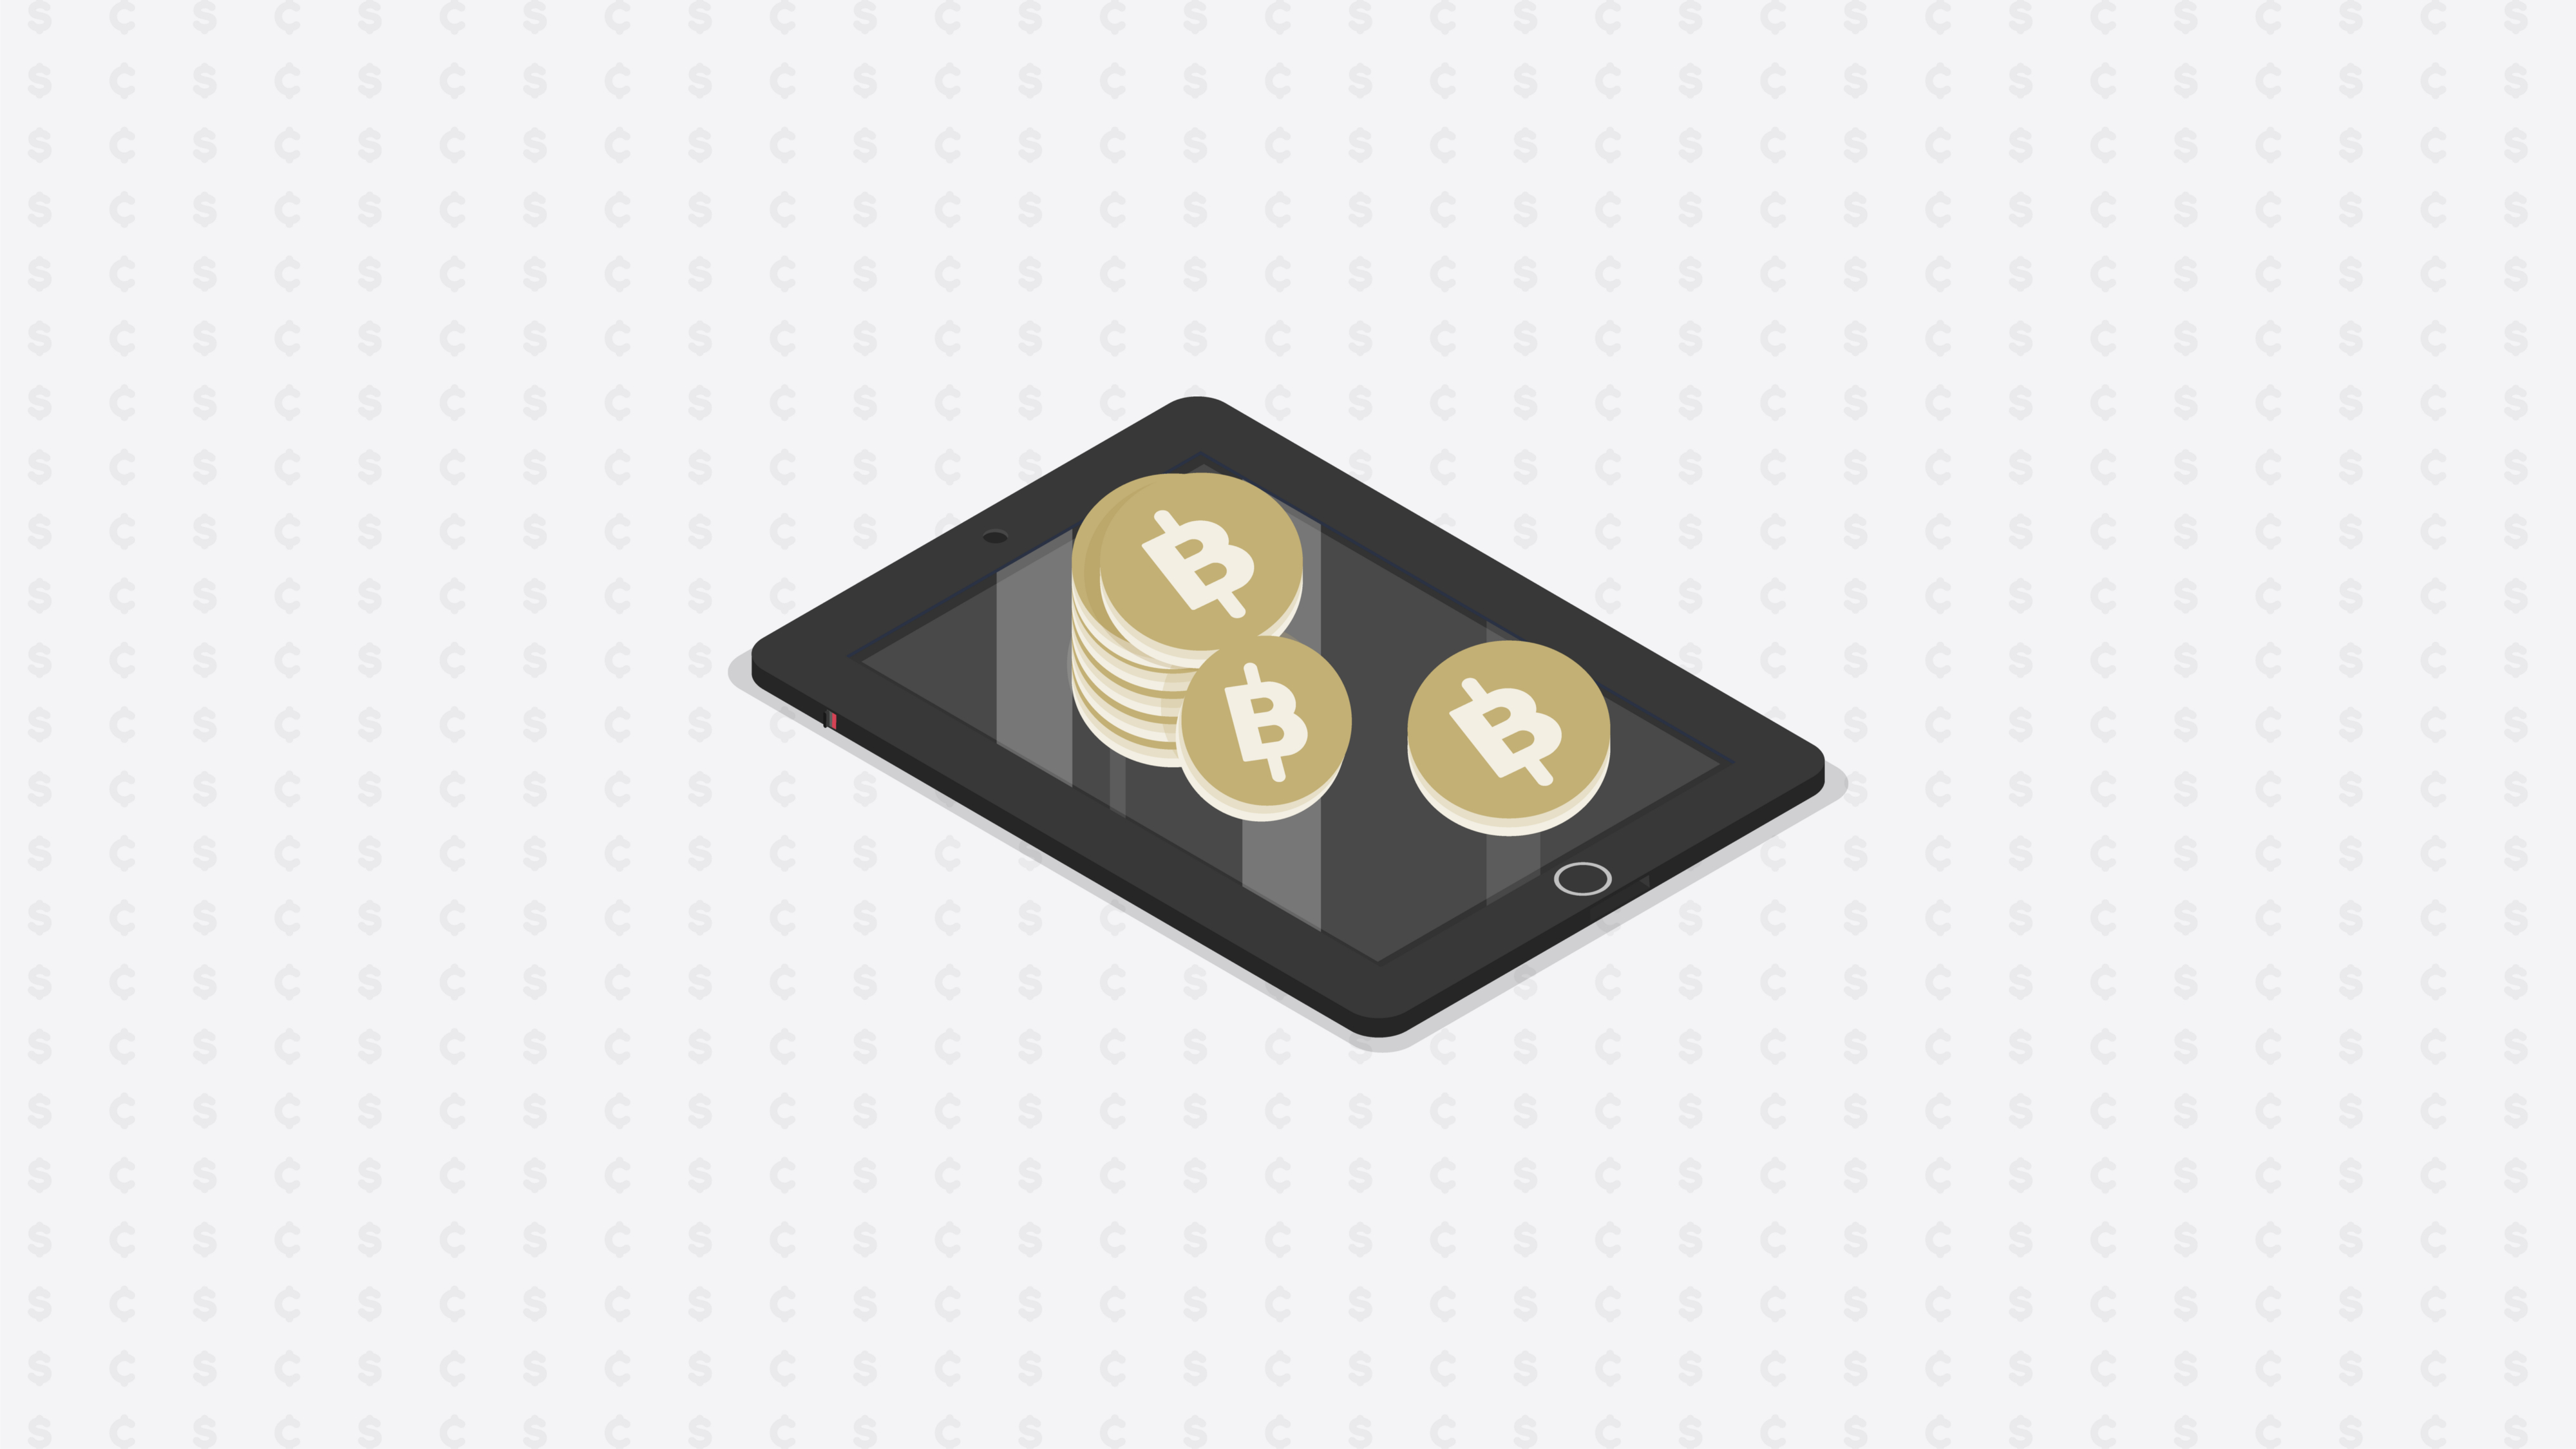 /heres-how-bitcoin-gets-its-valuewhy-bitcoin-makes-no-sense-and-a-speculation-of-its-future-6f3k32q6 feature image